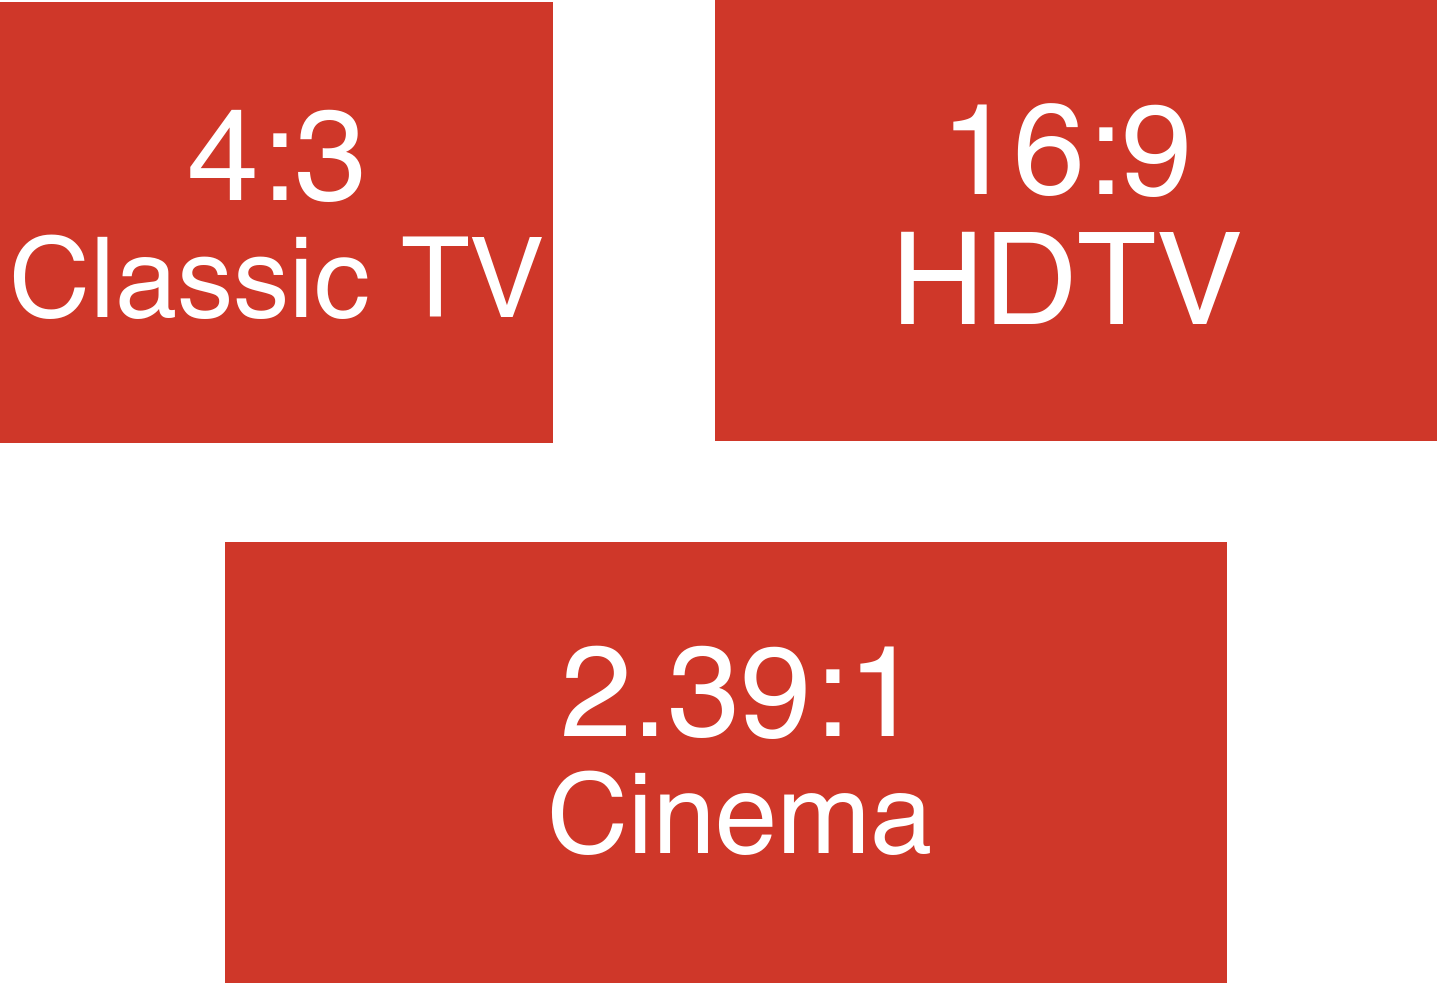 The most common video aspect ratios for TV and video are 4:3, 16:9, and 2.39:1